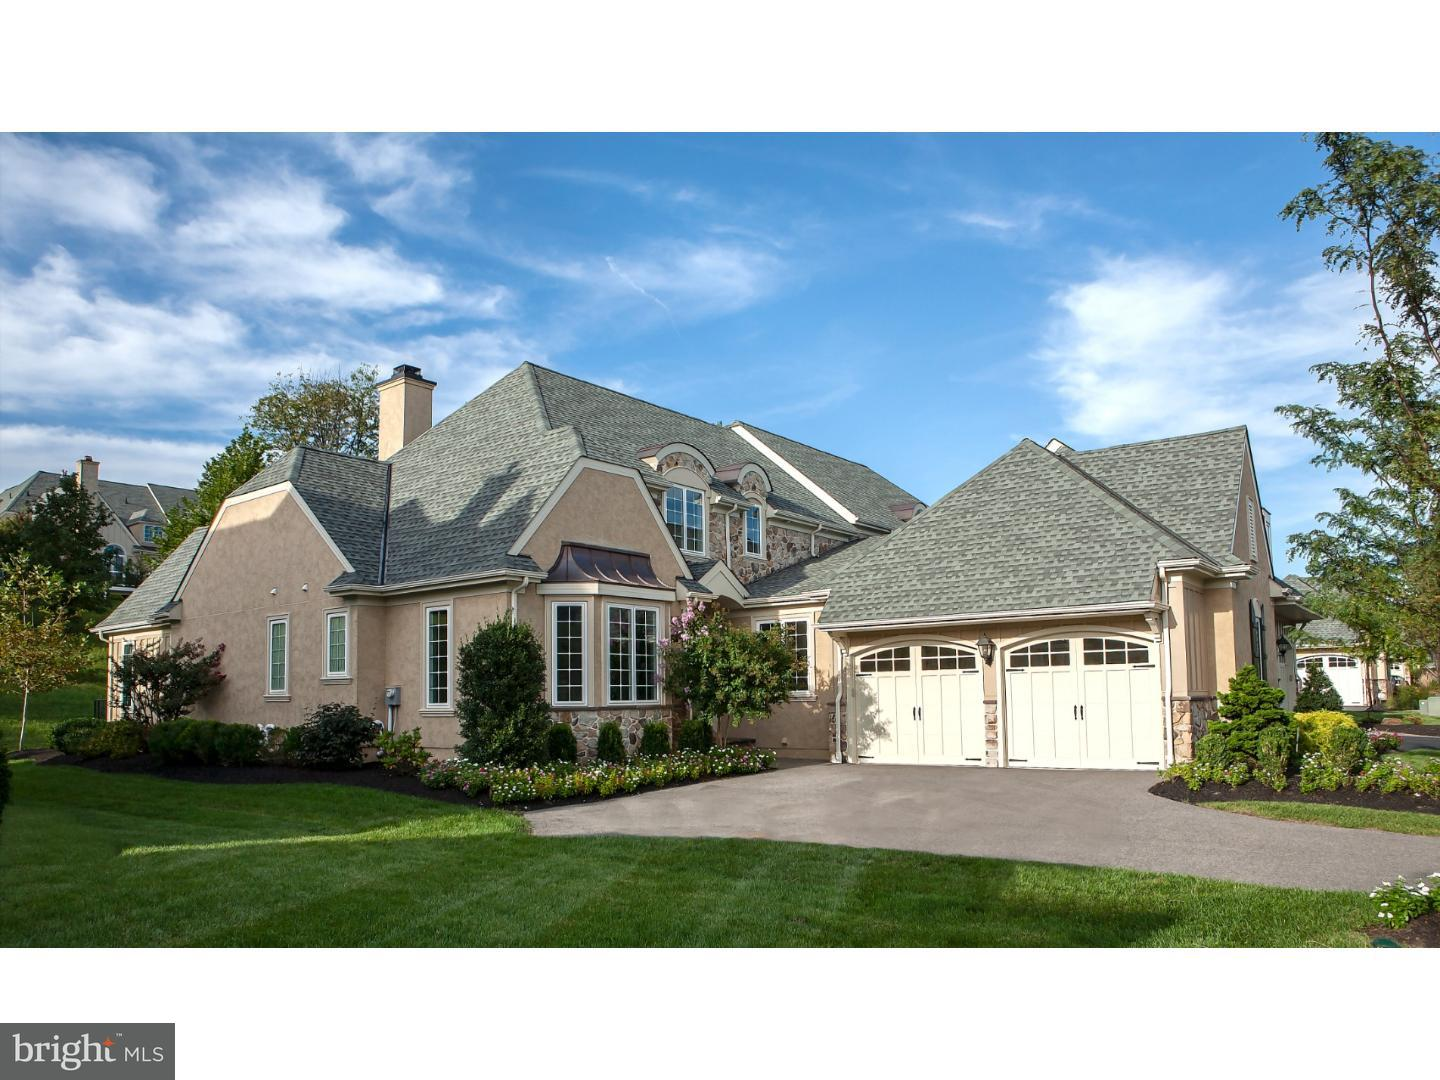 205 Valley Ridge Road Haverford, PA 19041